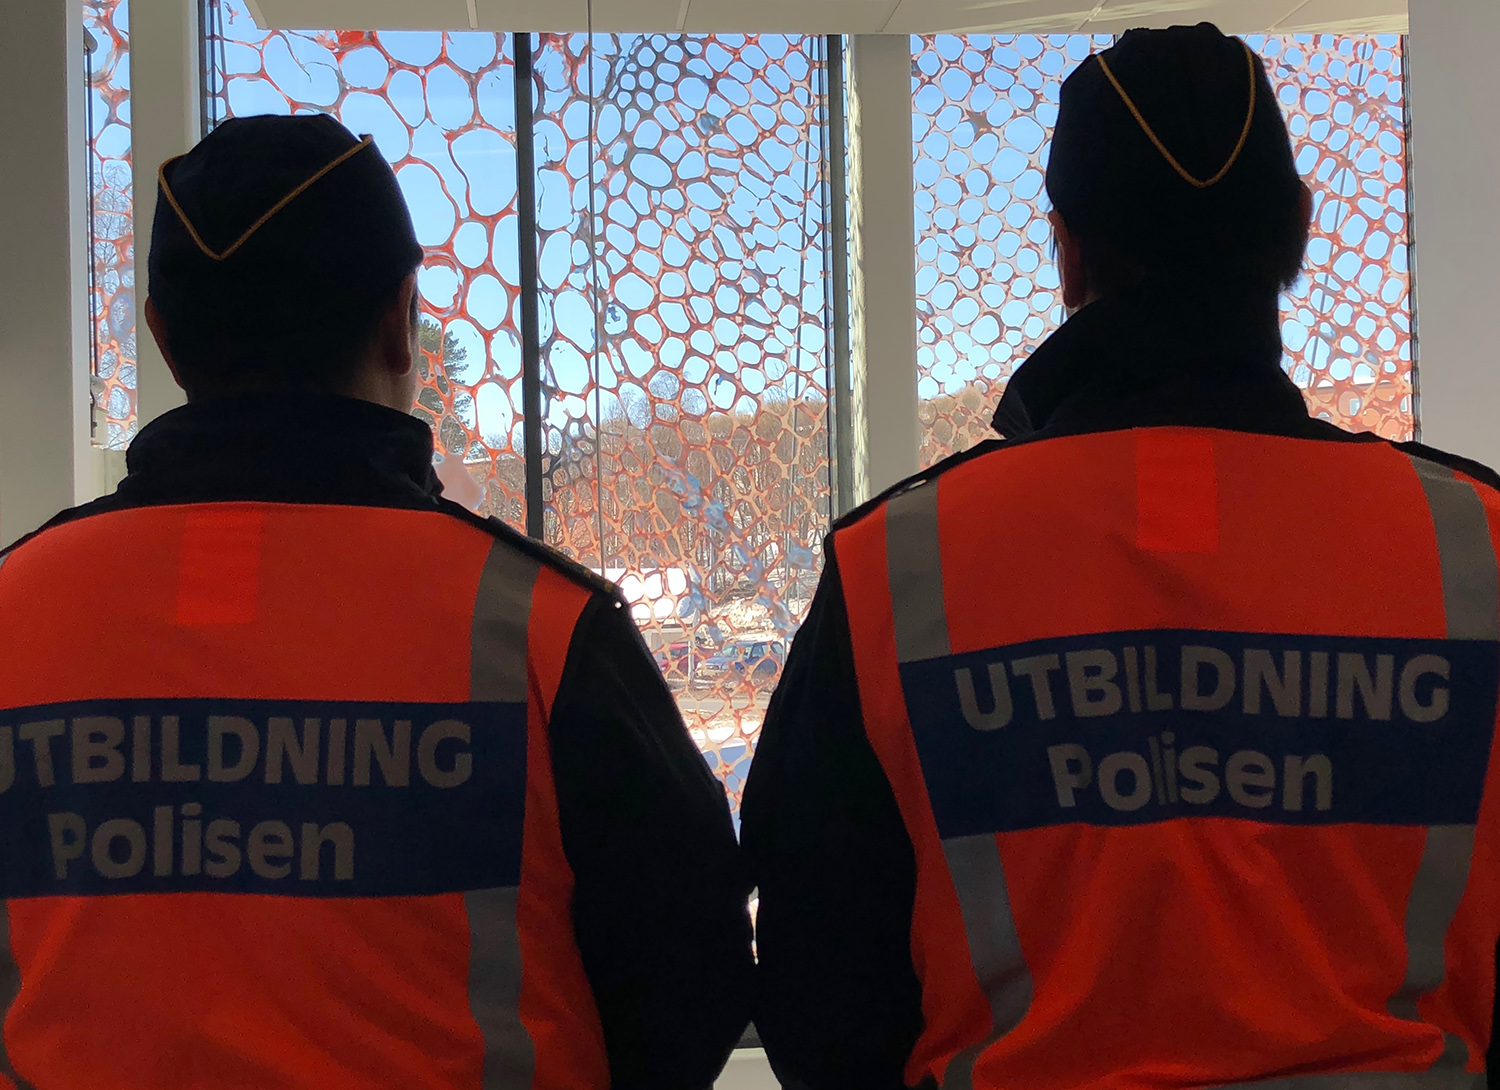 Two people with orange vests are looking at the artwork from the inside.